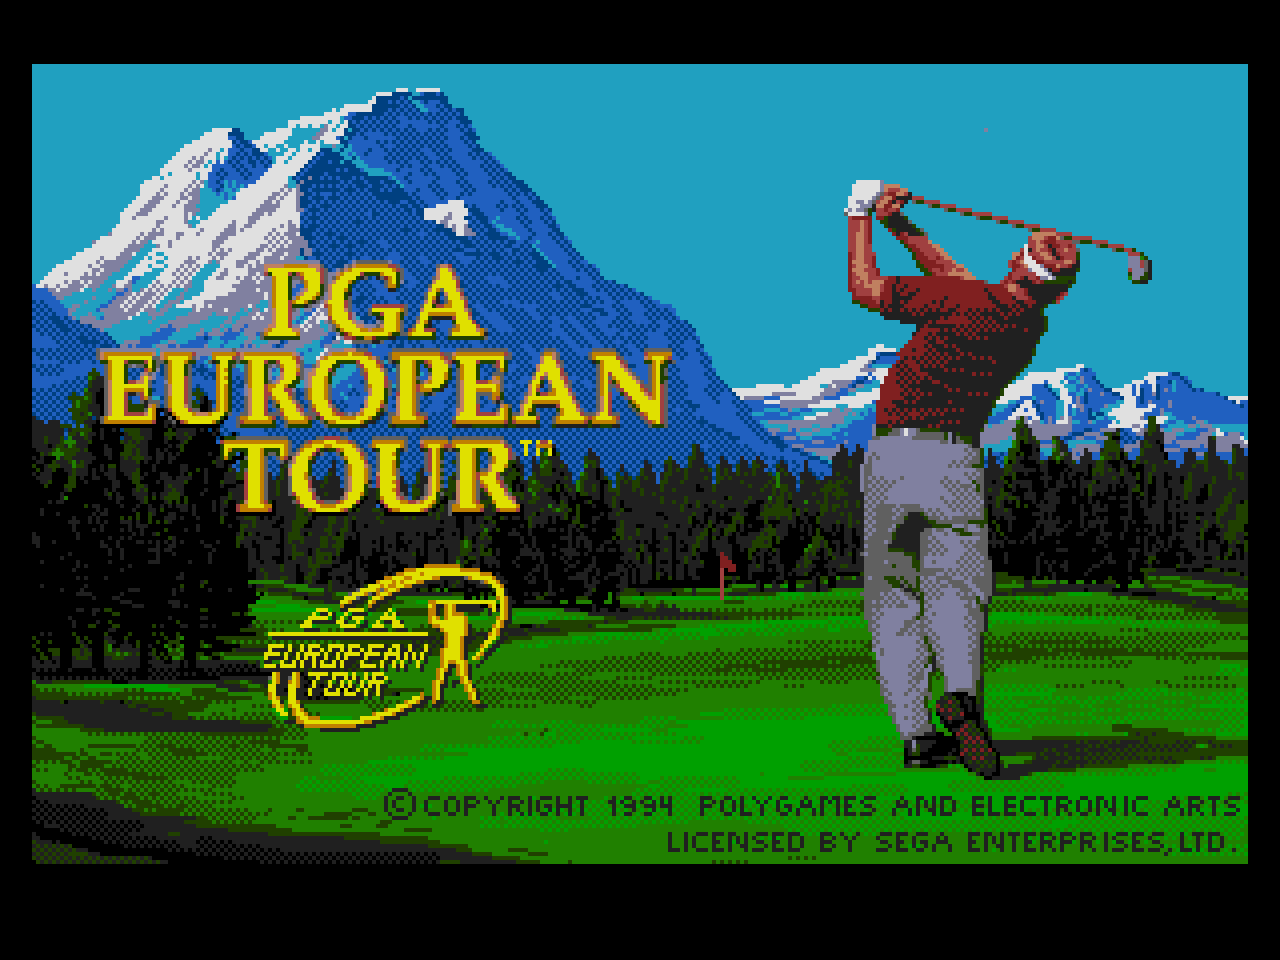 Longest Average Drive On European Tour